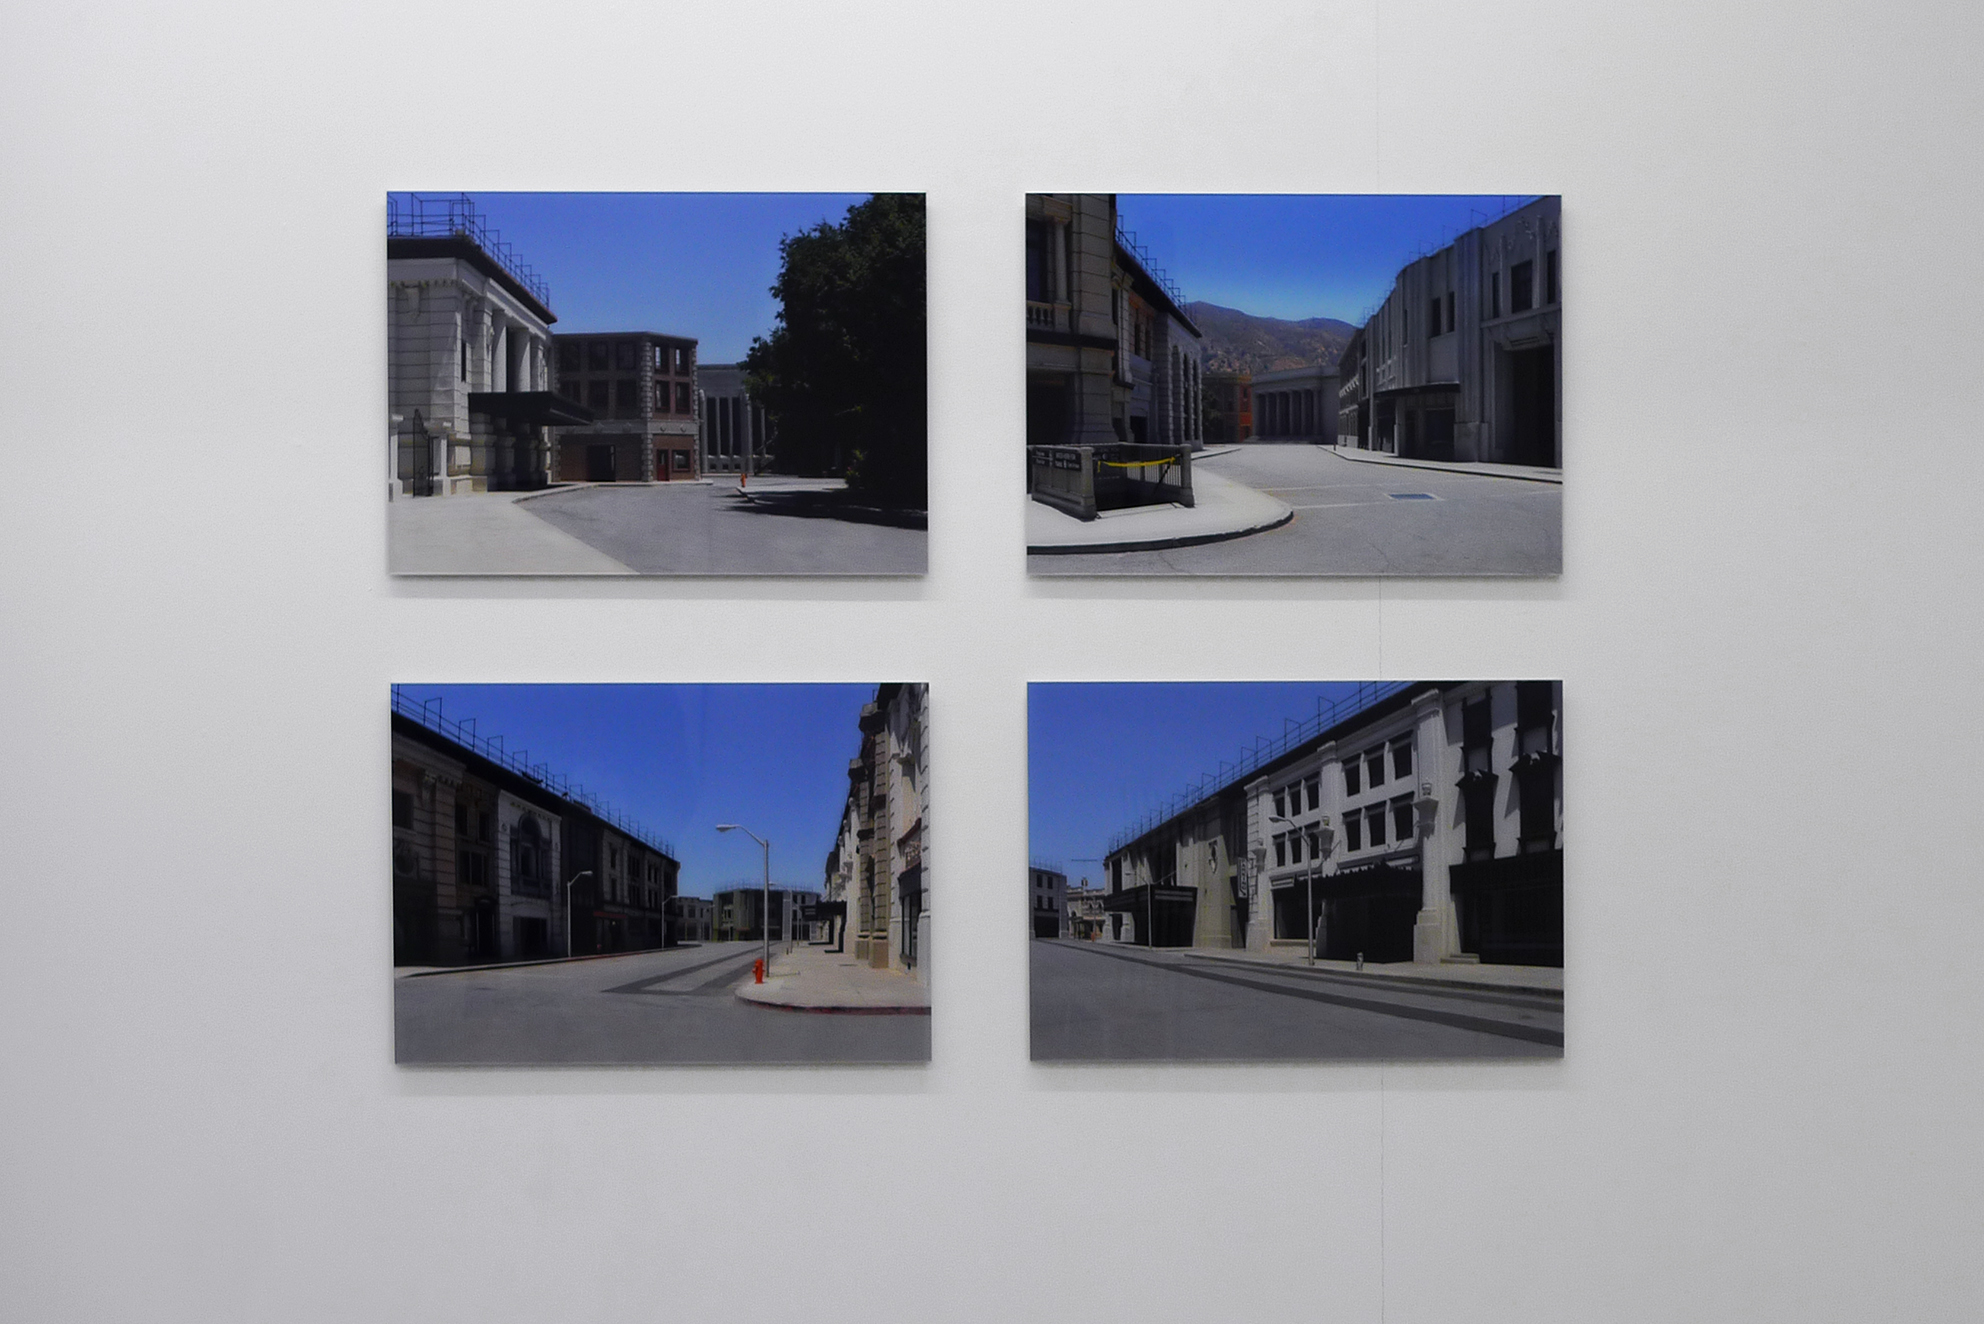 WB, Studio Warner Brothers, Los Angeles, series of 4 photographs, inkjet print / PVC and Plexiglas, 47 x 70 x 1 cm, 2010, with Swann Thommen